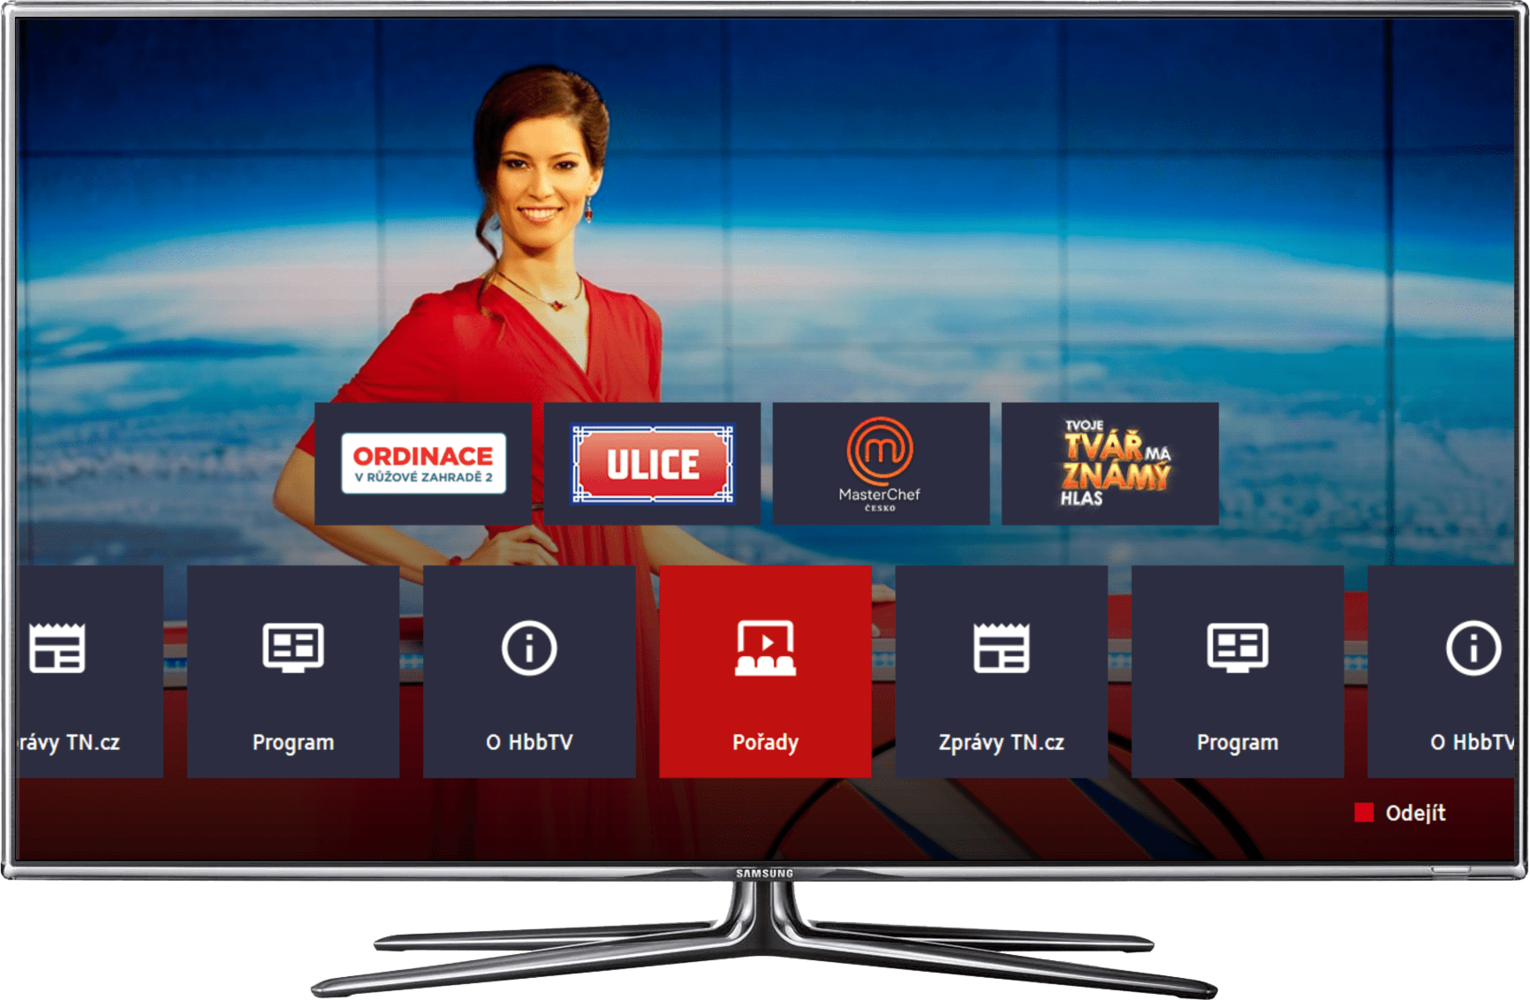 Main screen of TV Nova HbbTV application